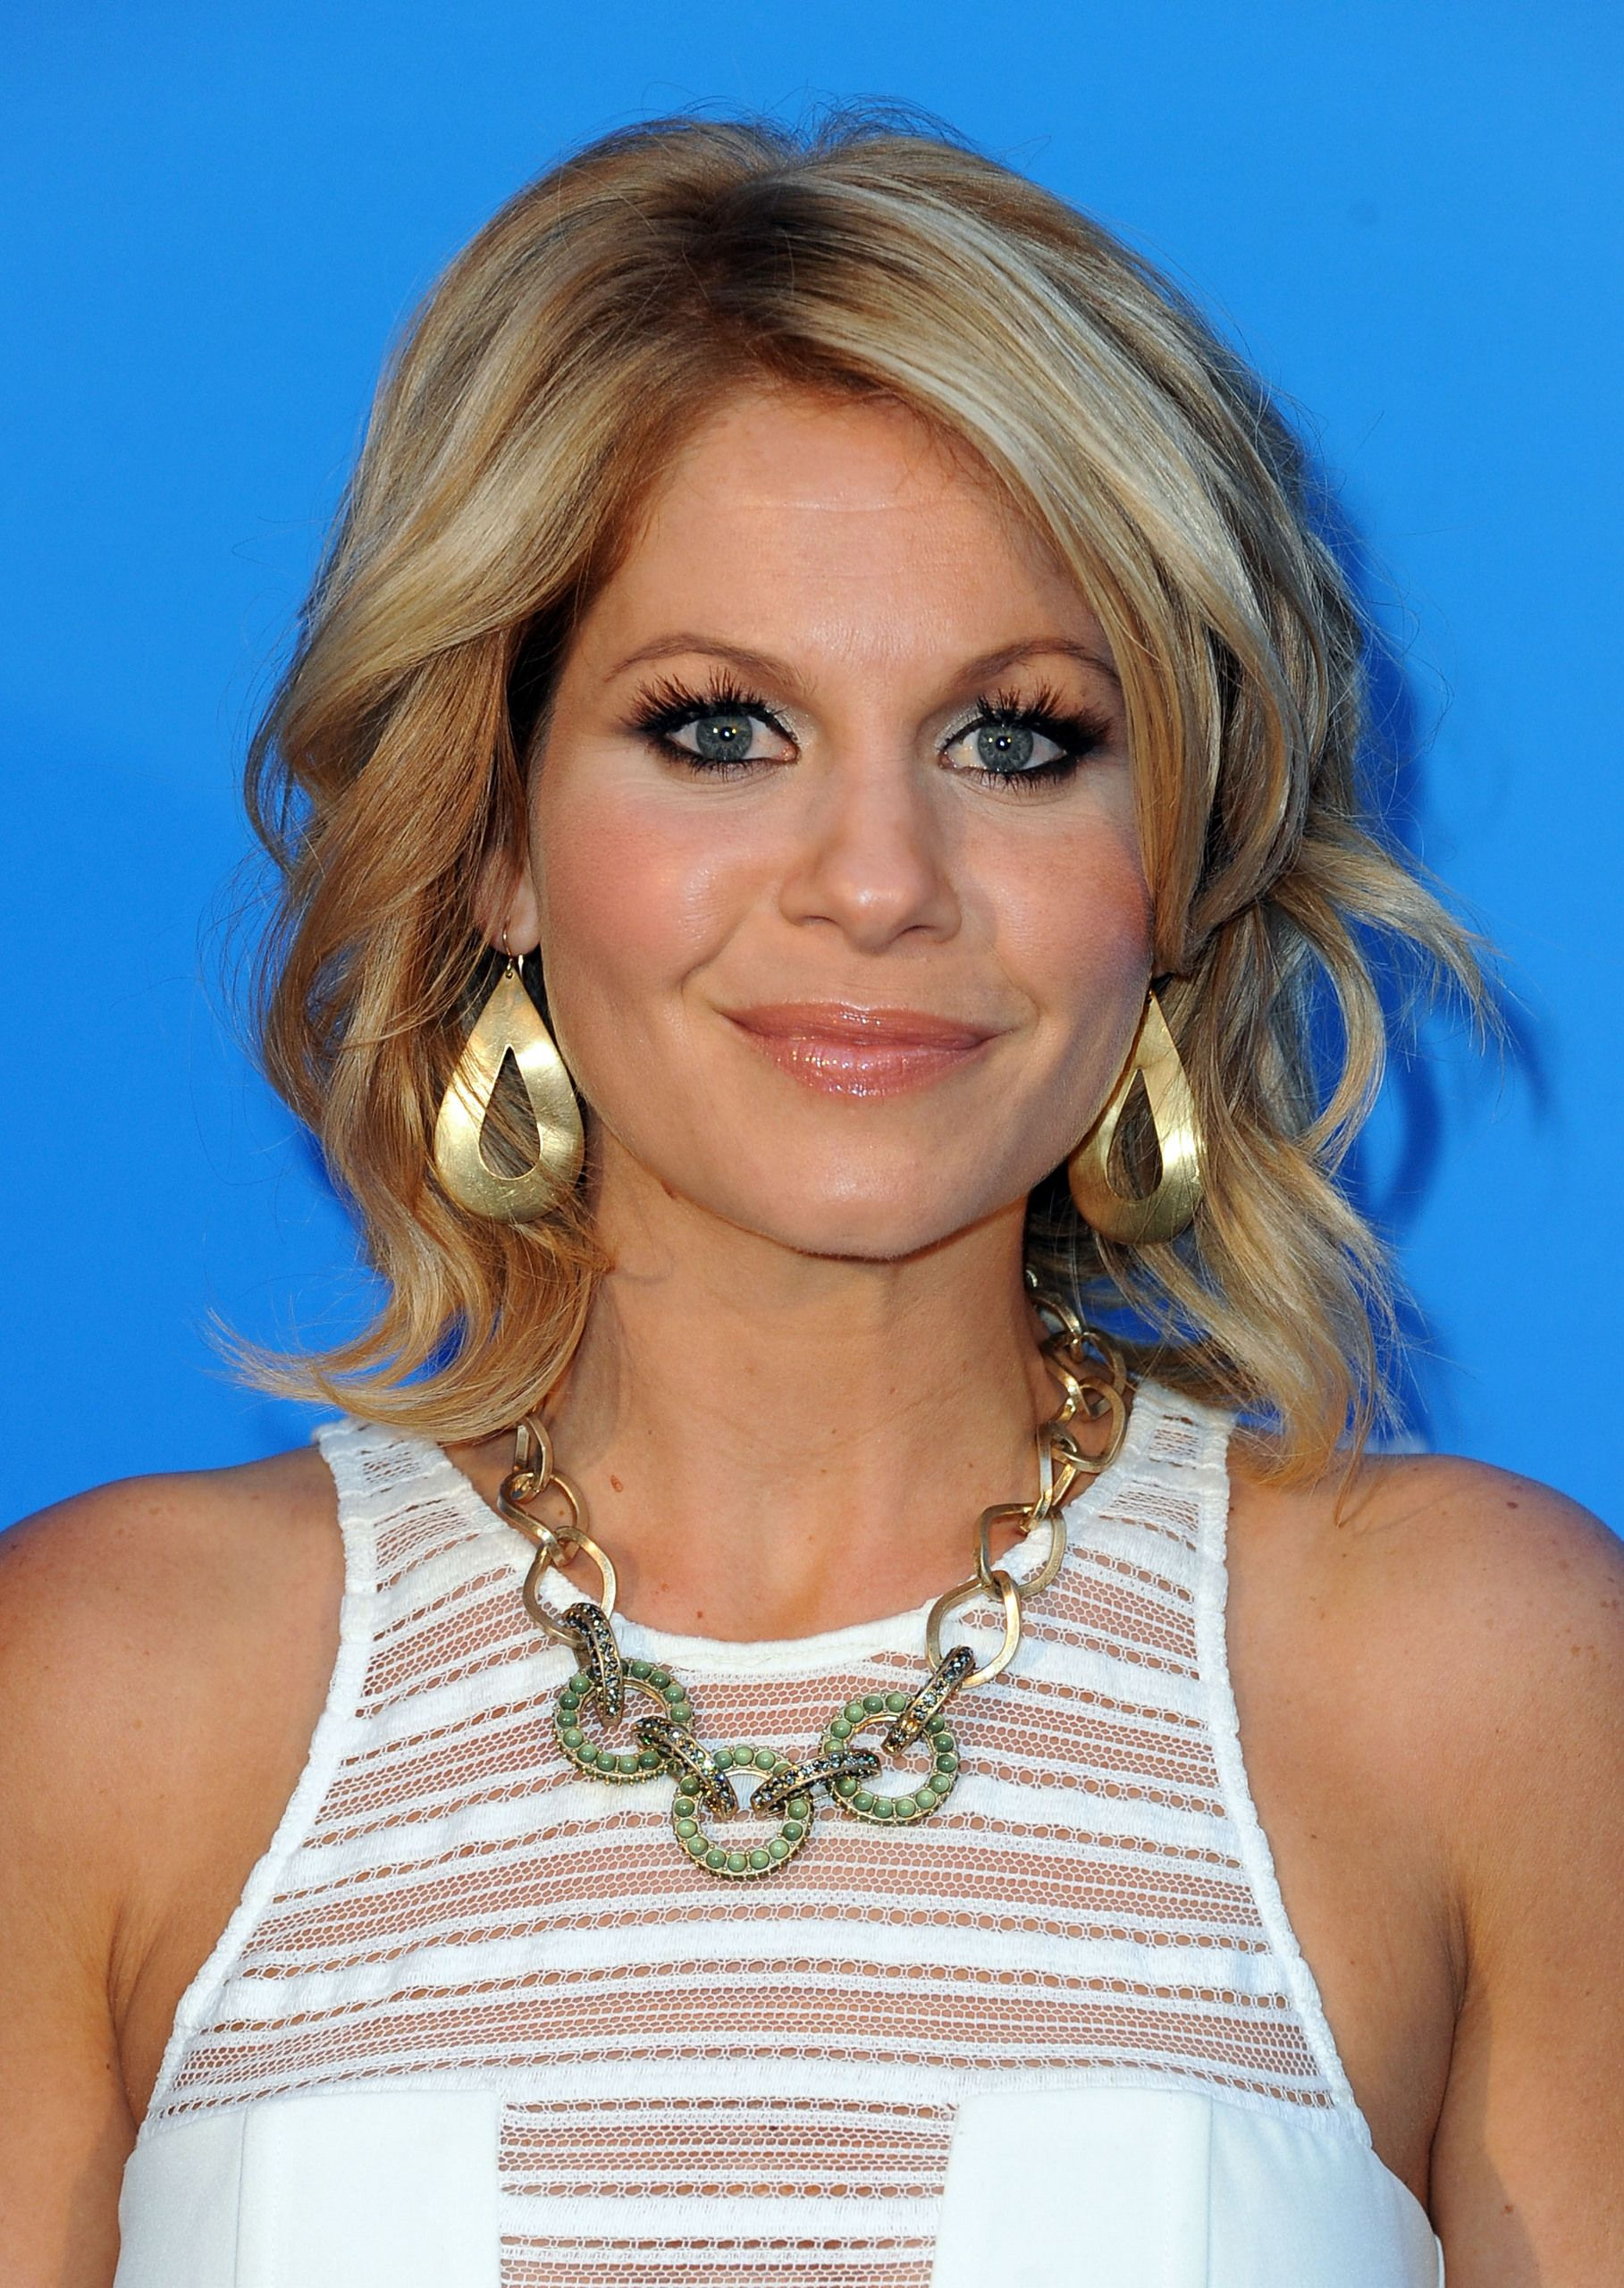 Candace Cameron Bure Short Hair : candace, cameron, short, Candace, Cameron, Photo:, Warner, Cable, Media's, 'Cabletime', Upfront, Event, Hollywood, Roosevelt, Hotel, Hair,, Styles,, Medium, Length, Styles